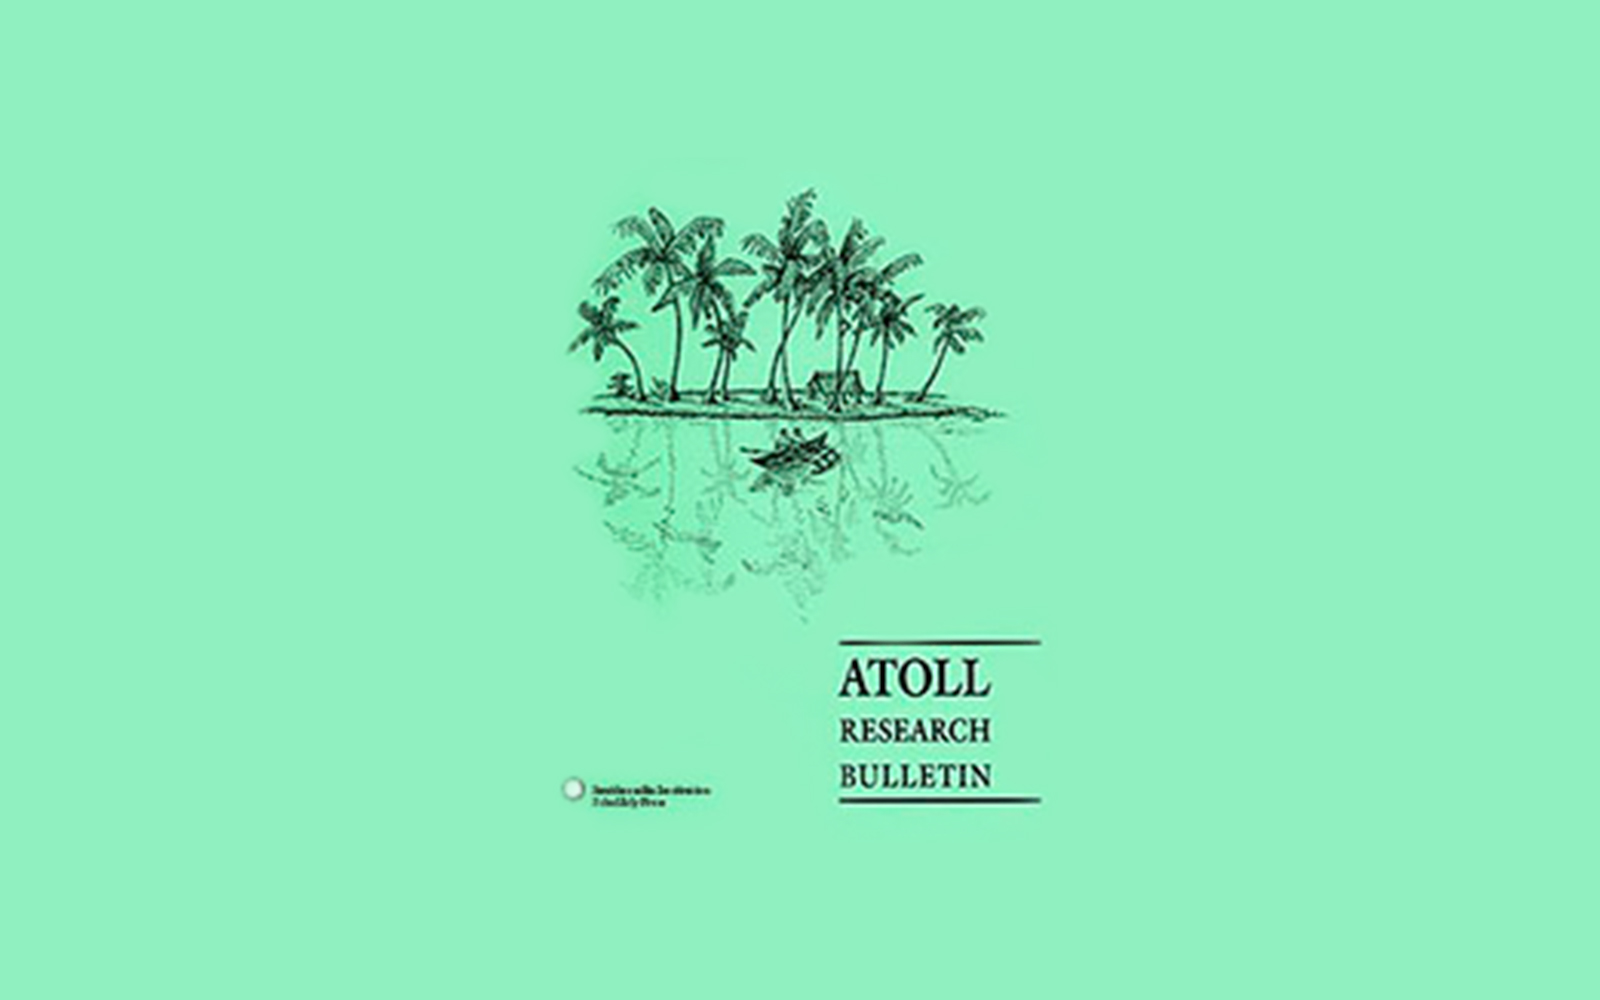 Atoll Research Bulletin  banner